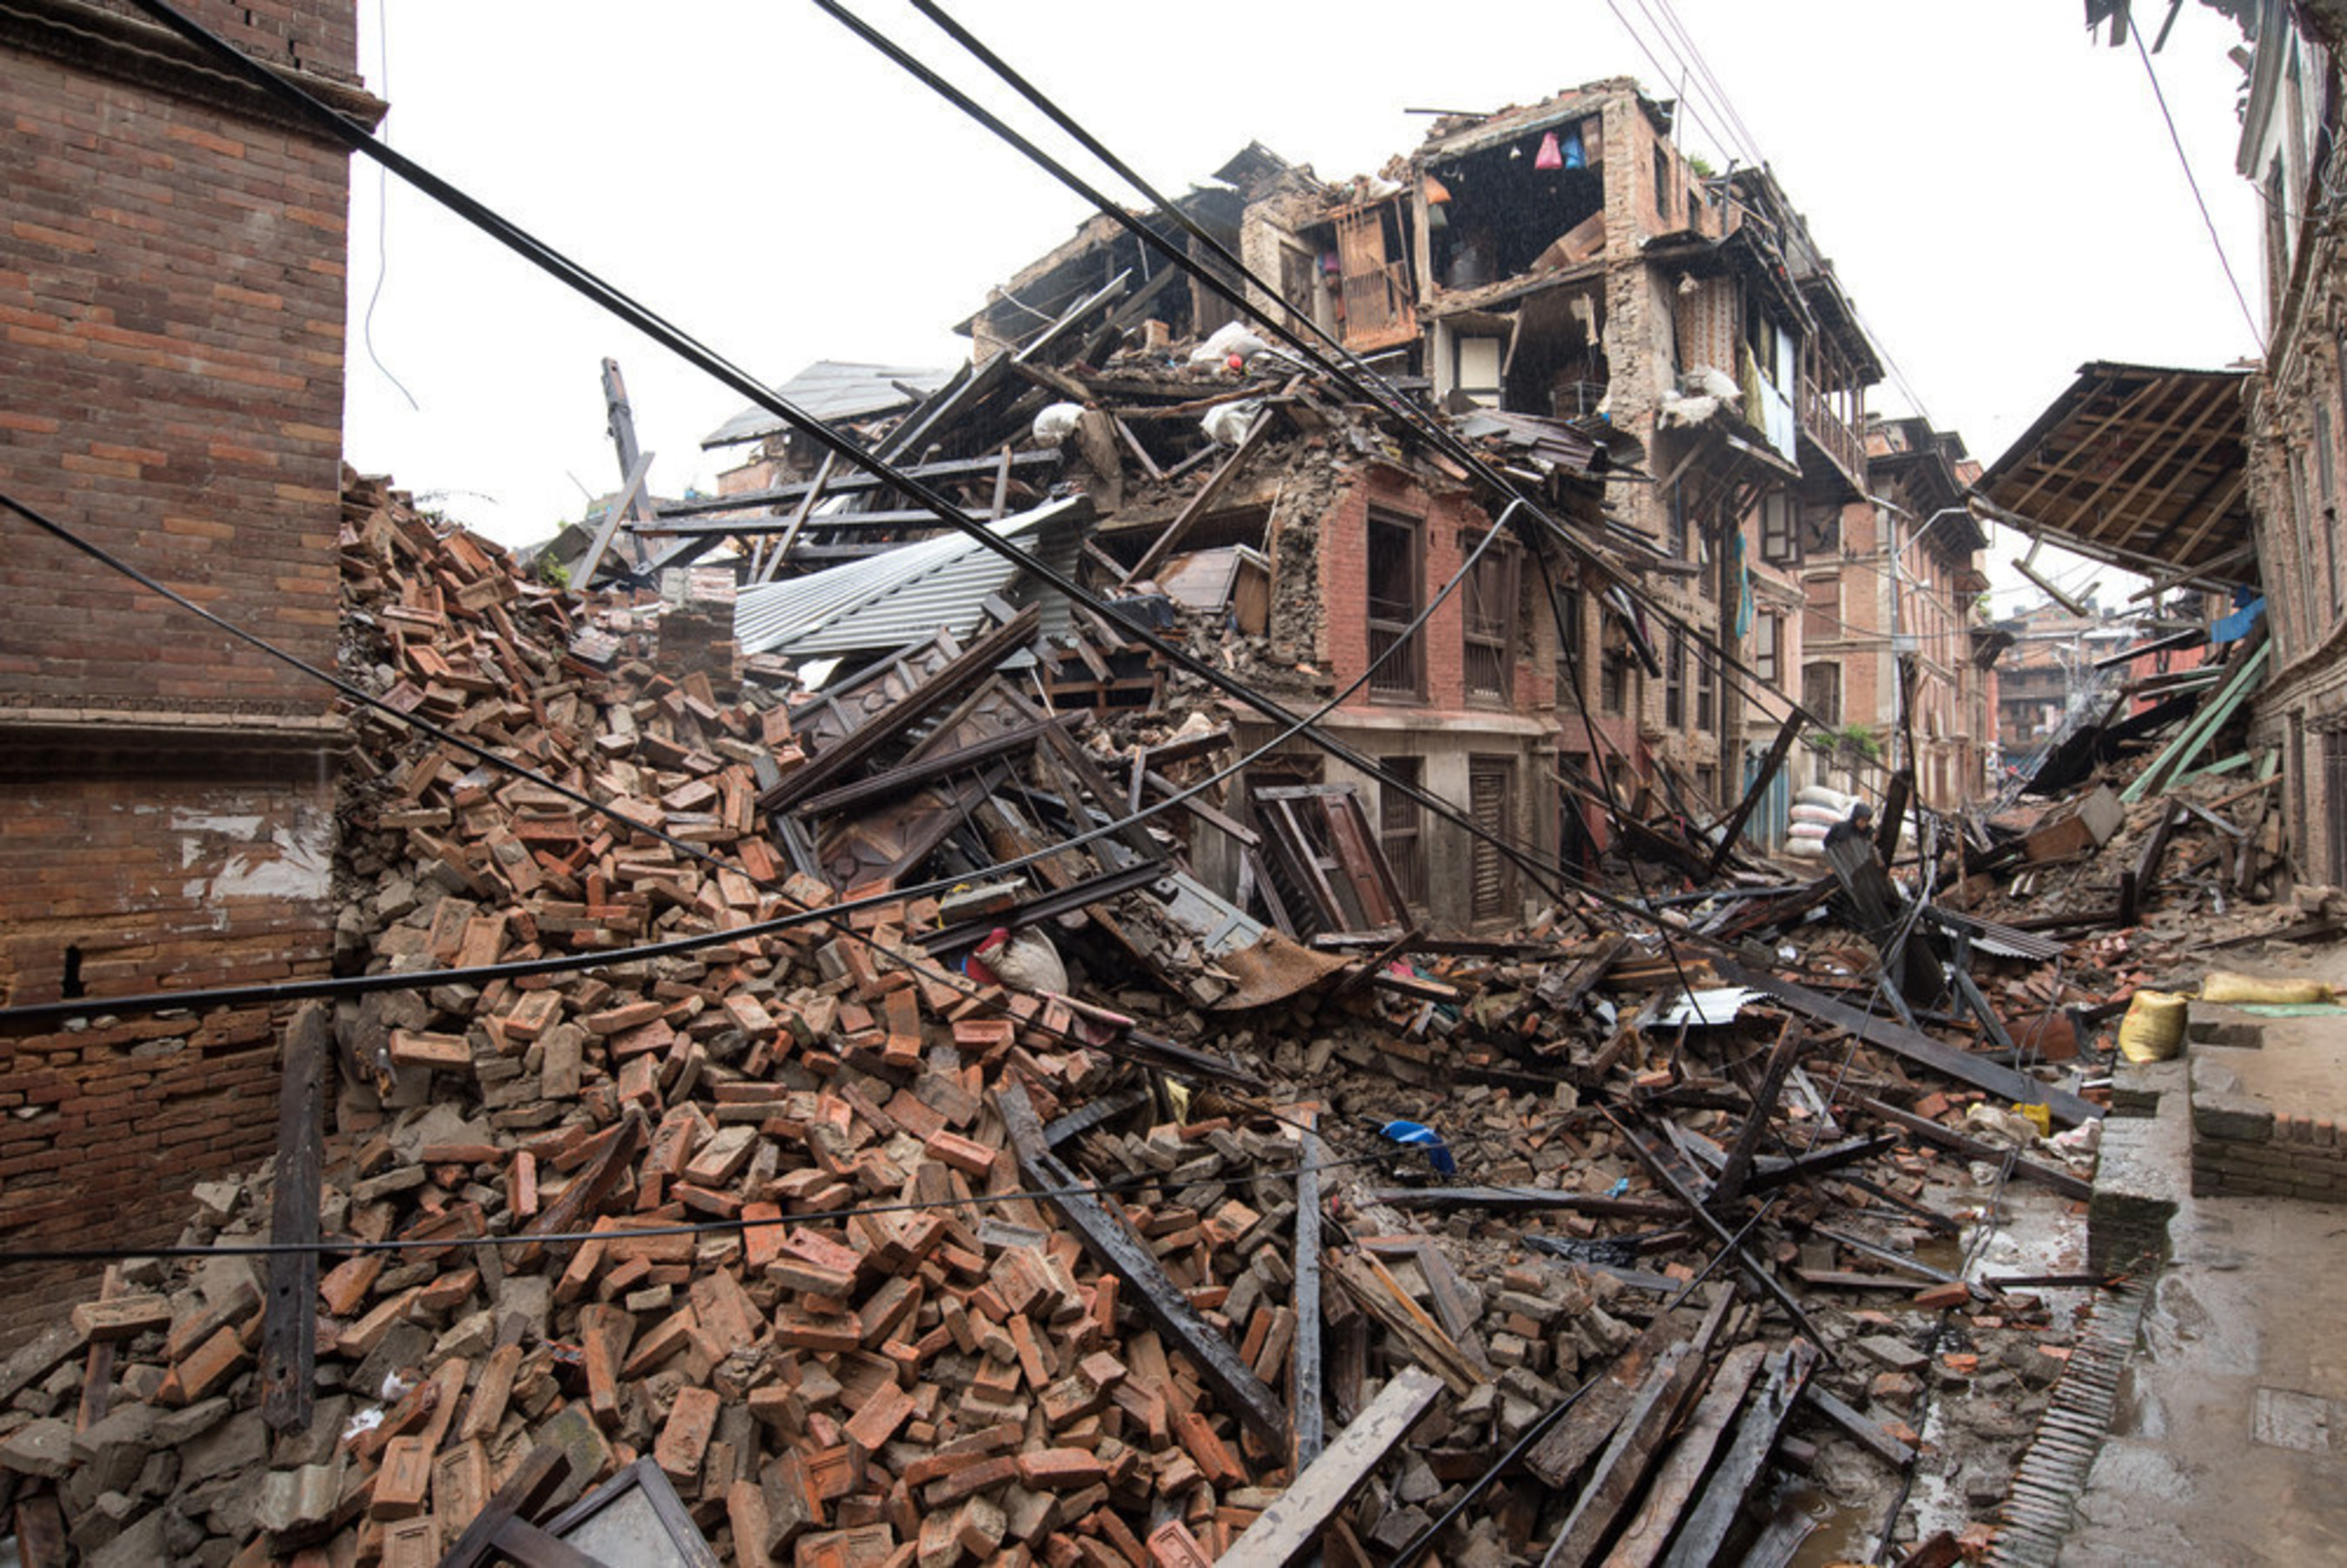 The 7.8 magnitude earthquake that struck Nepal killed more than 8,000 people and demolished half a million homes.